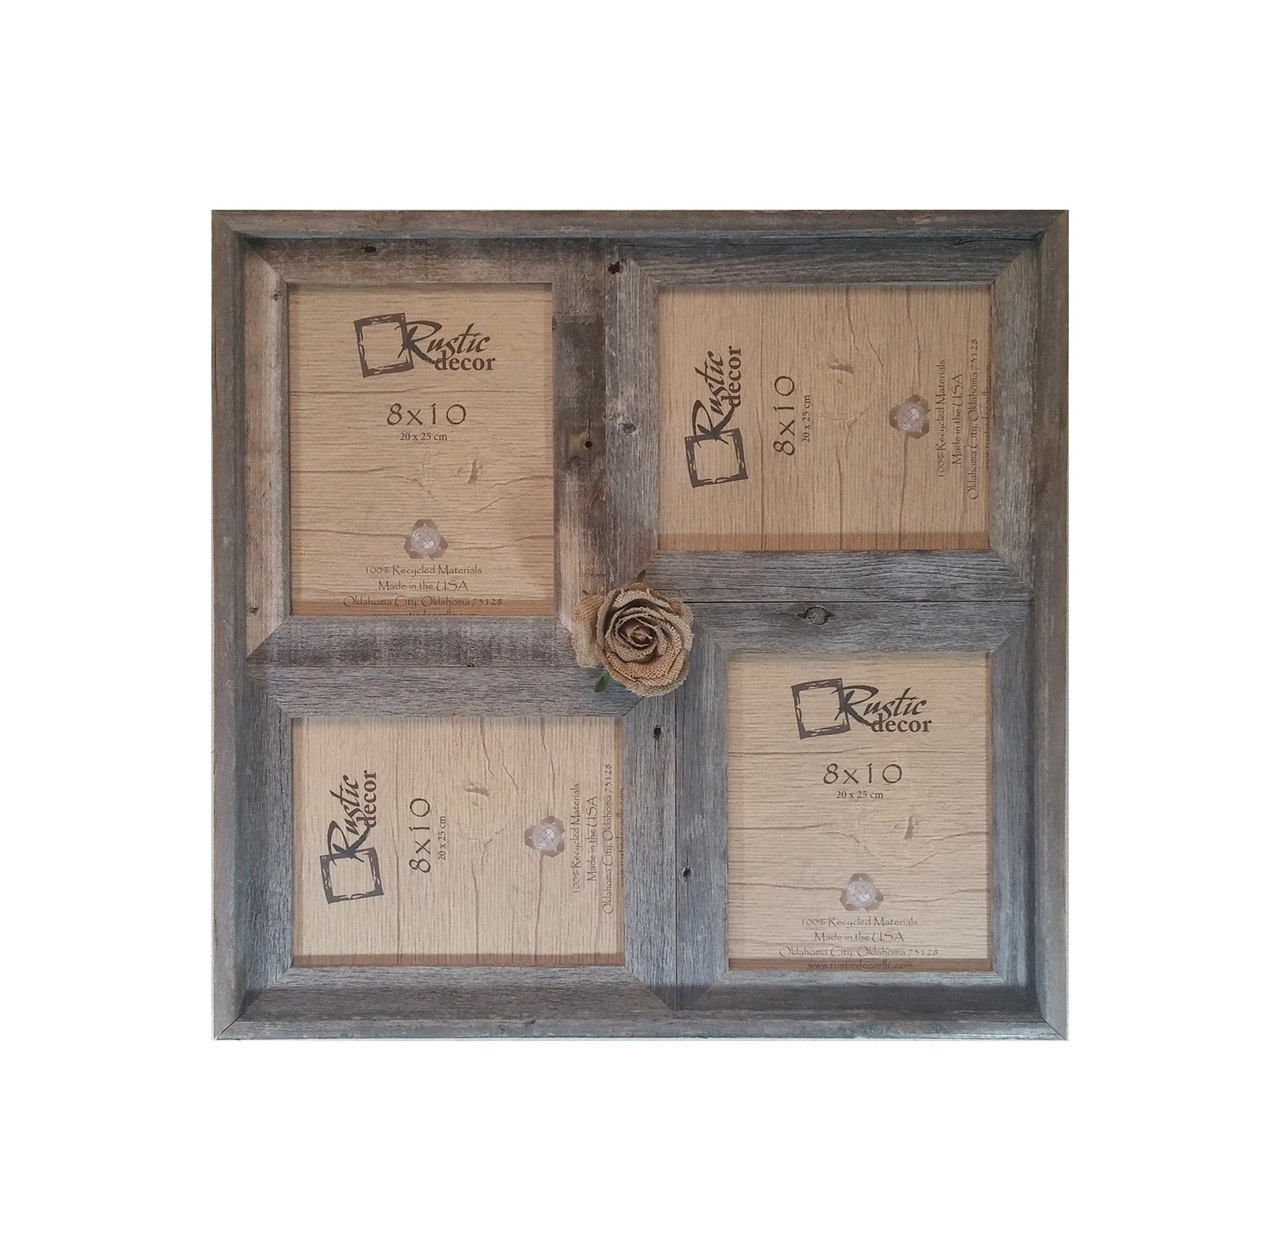 8x10 Multi-Direction Rustic Barn Wood Collage Frame - Rustic Decor